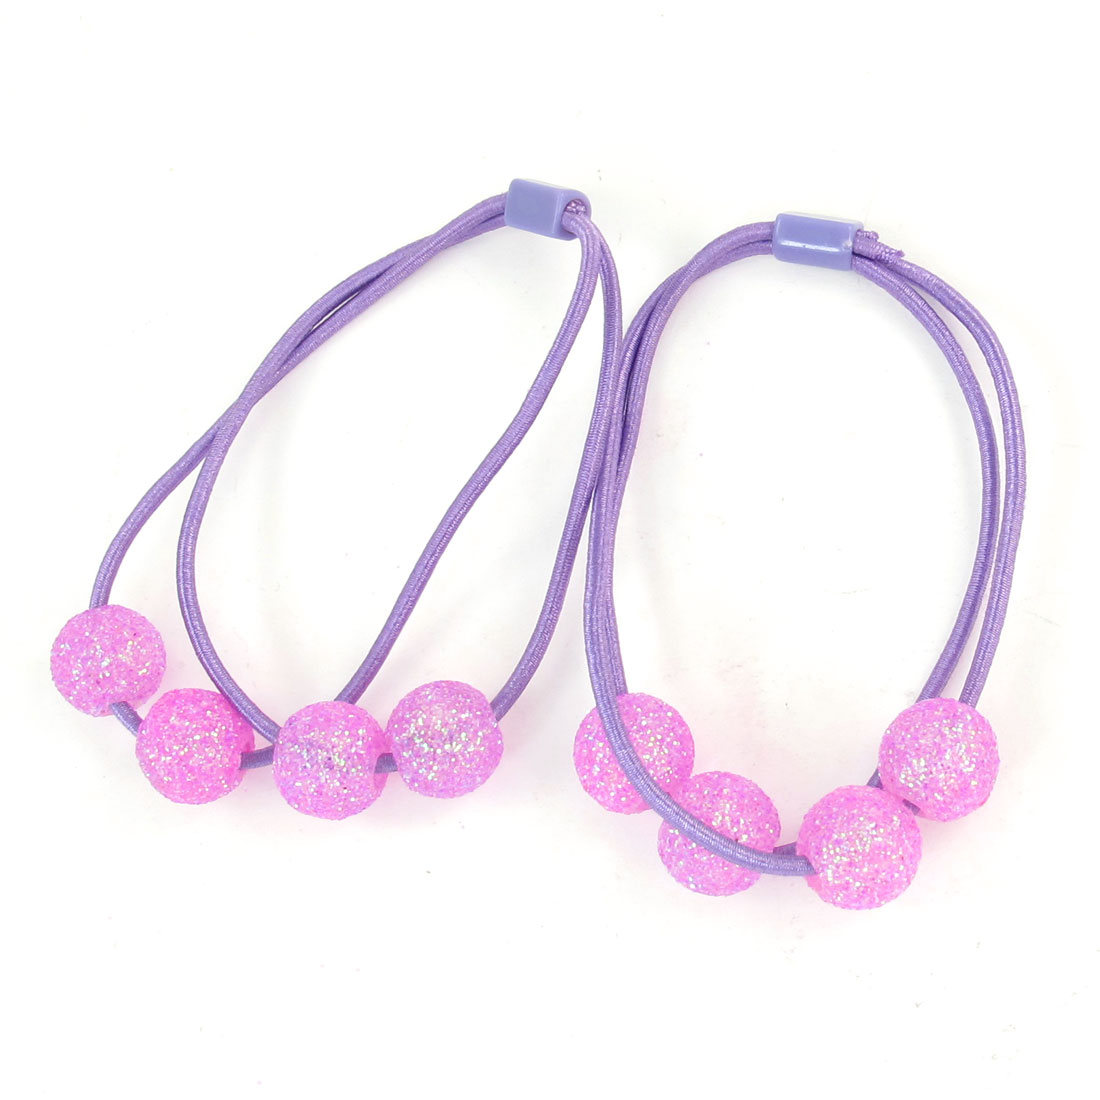 Pink Glitter Round Plastic Beads Accent Flexible Hair Band Ponytail Holder 2 Pcs